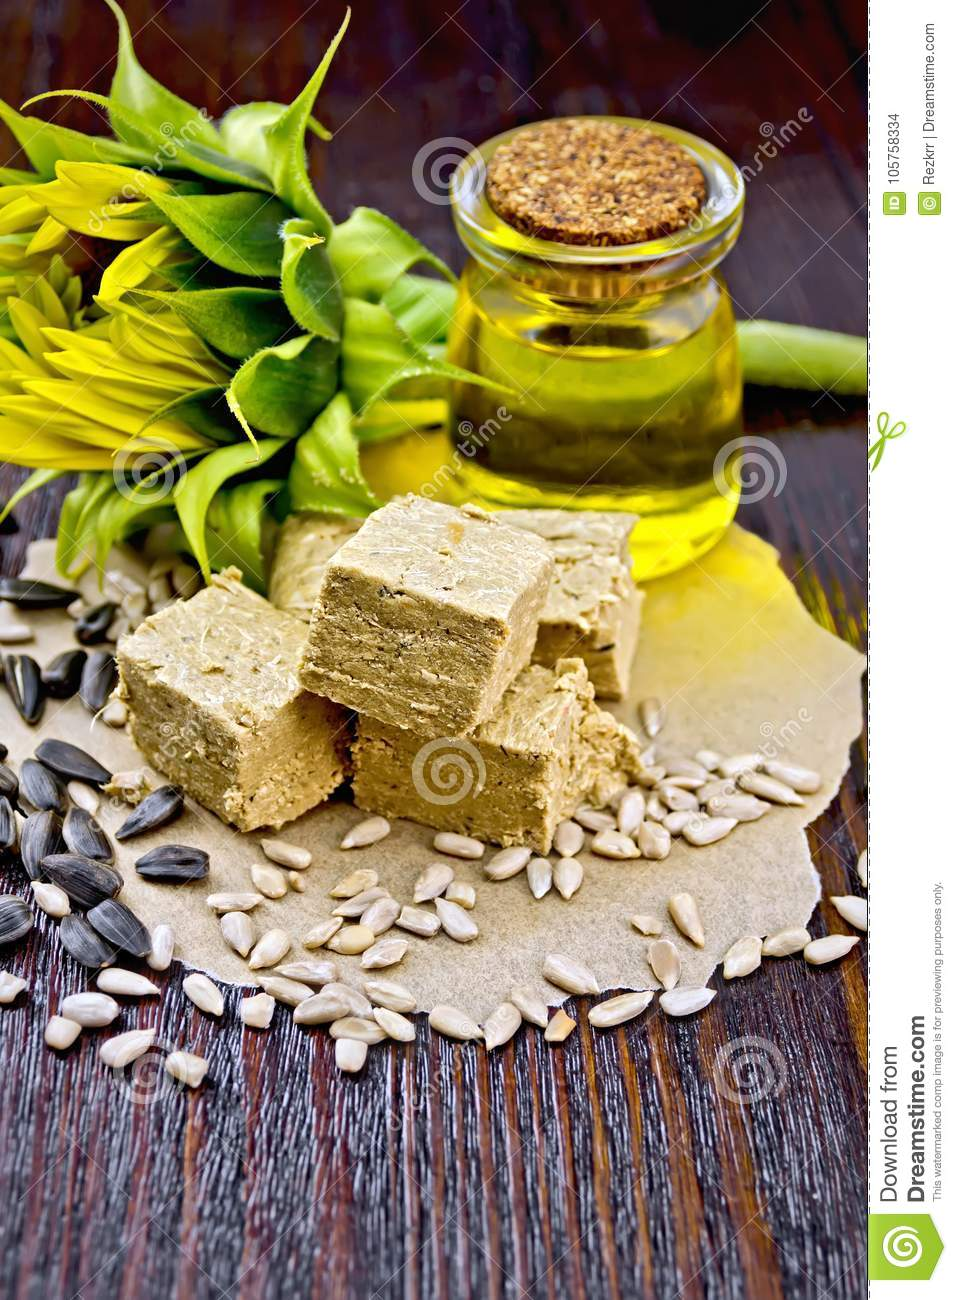 Halva On Paper With Seeds And Oil Stock Photo Image Of Paper